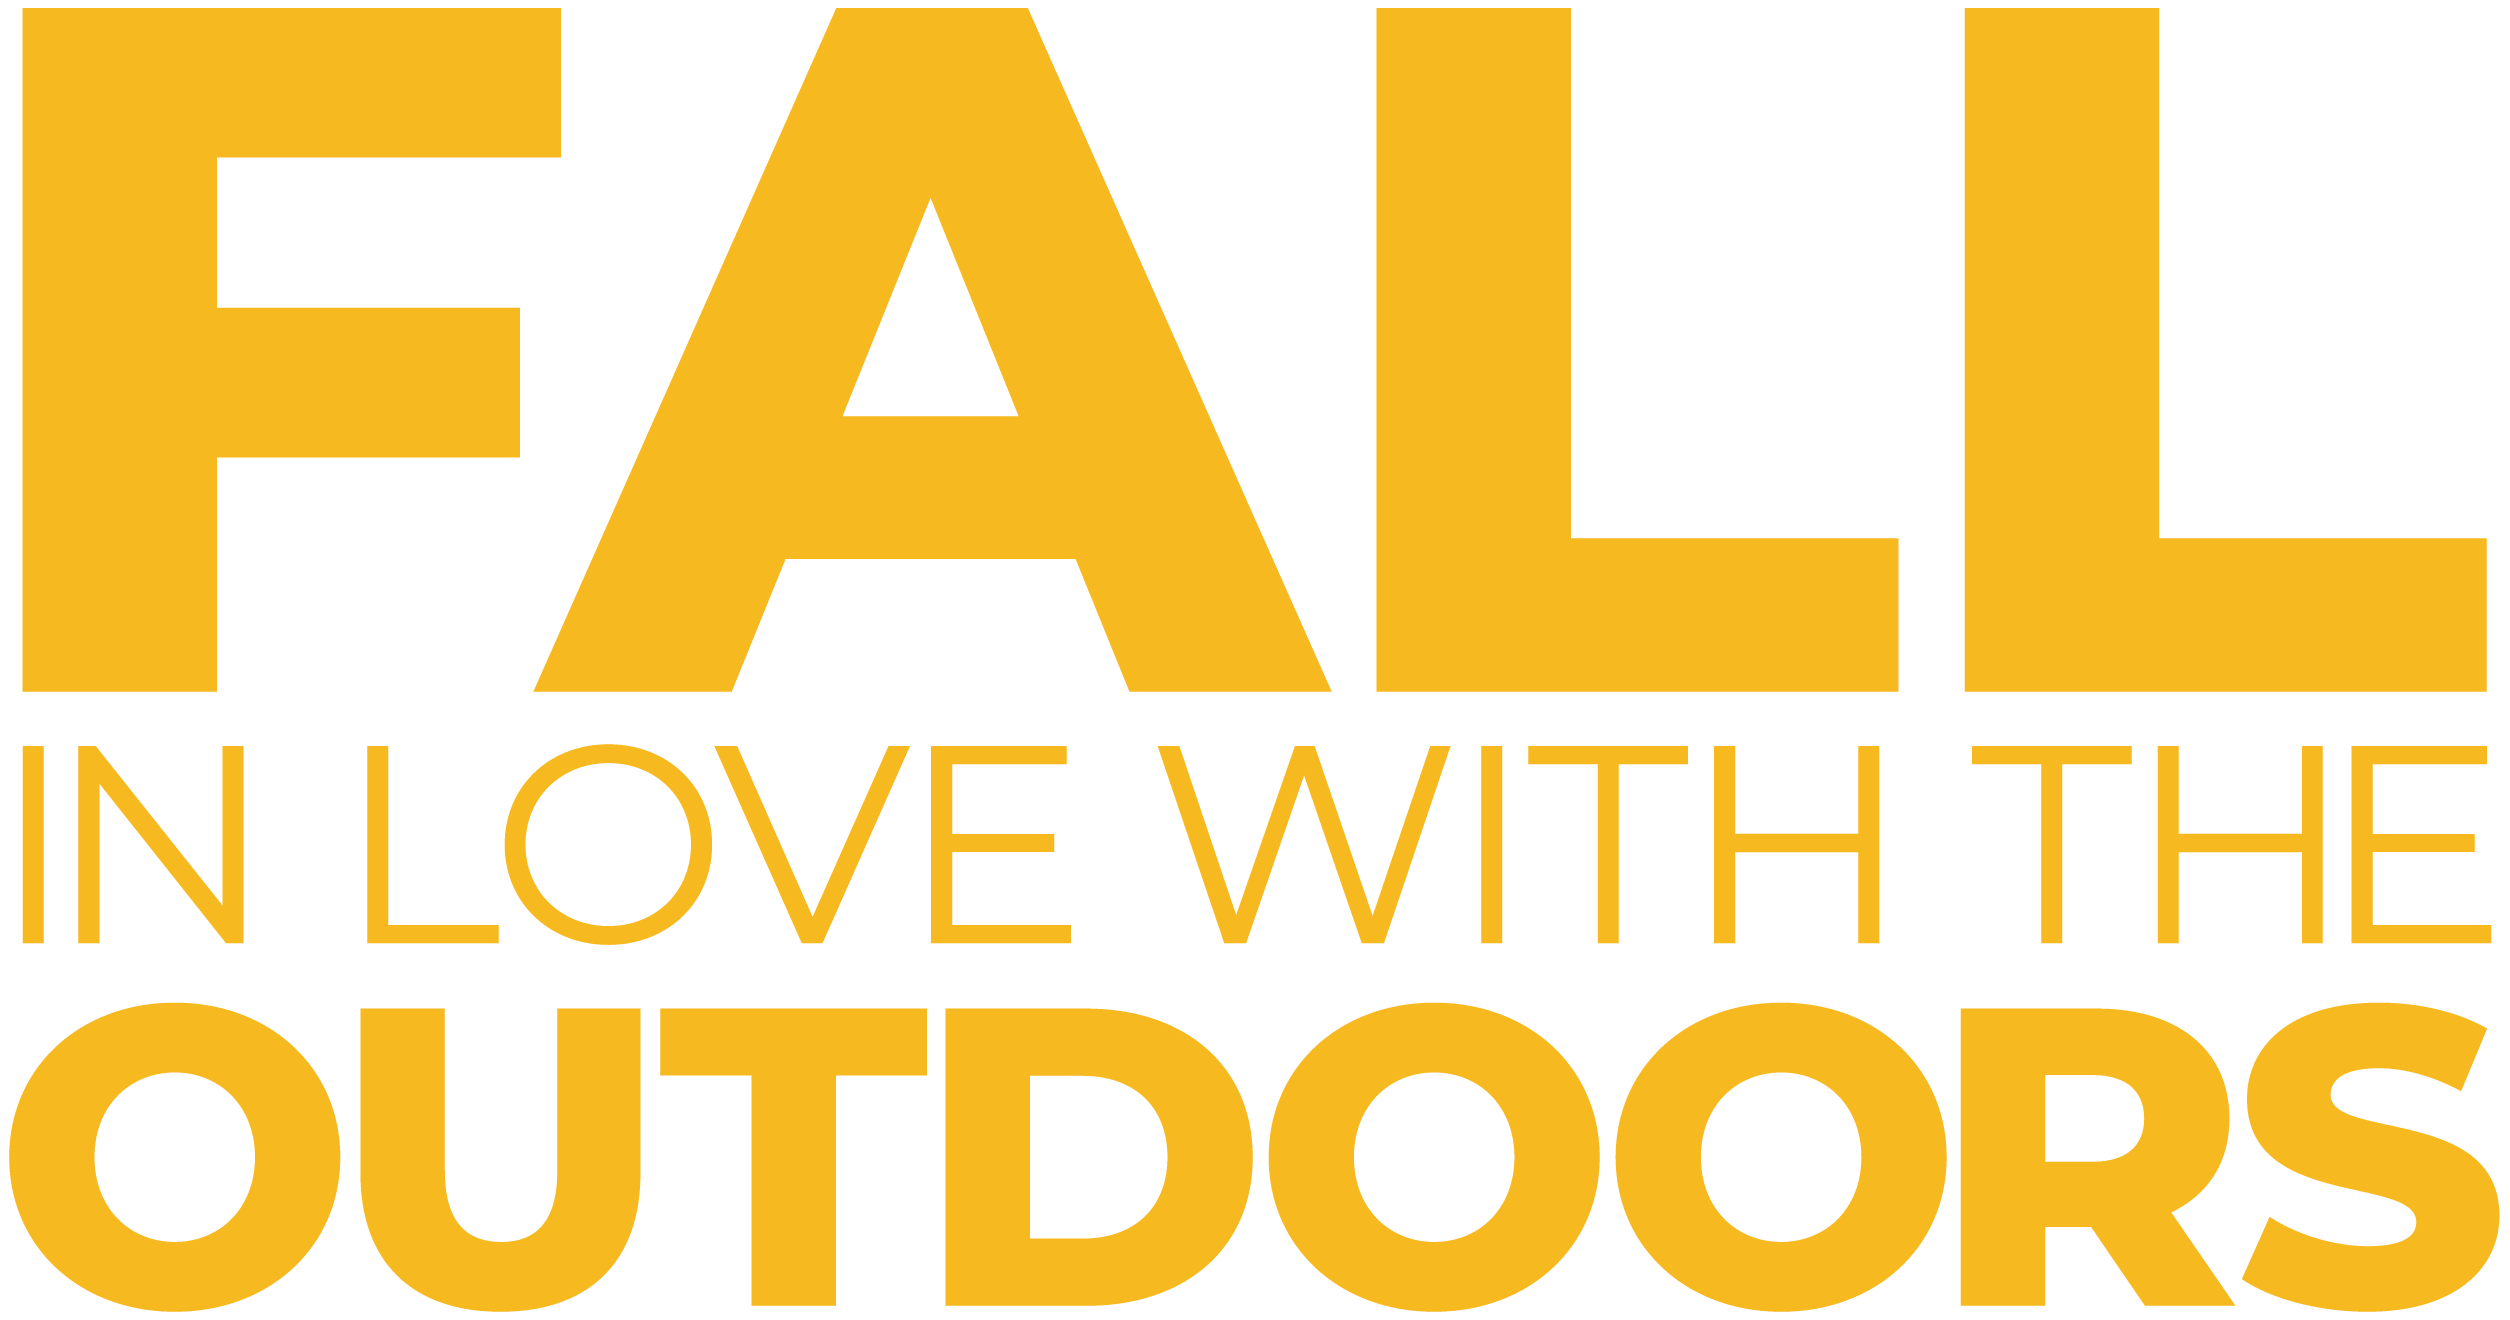 Fall in Love with the Outdoors